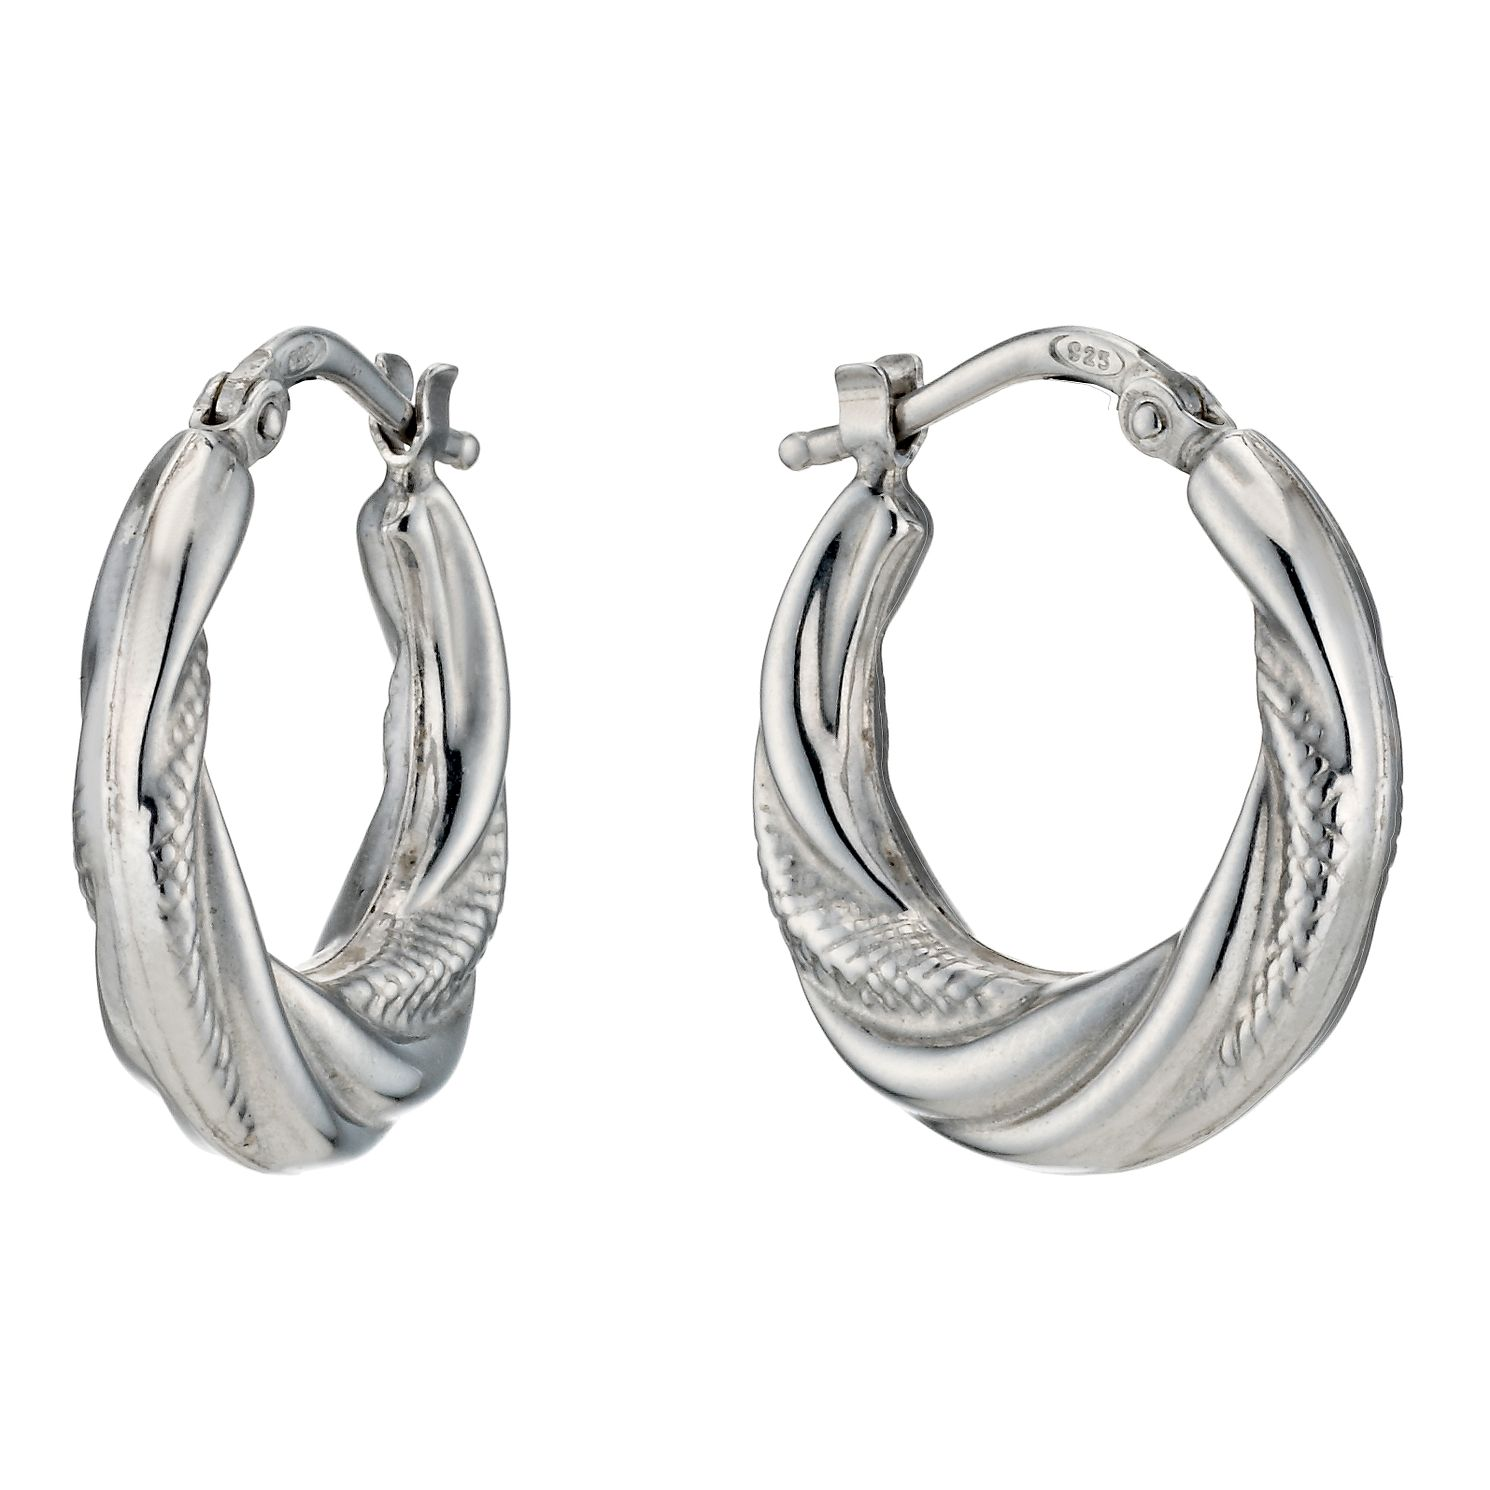 Silver Rhodium-Plated Twist Texture Creole Hoop Earrings - Product number 1234064